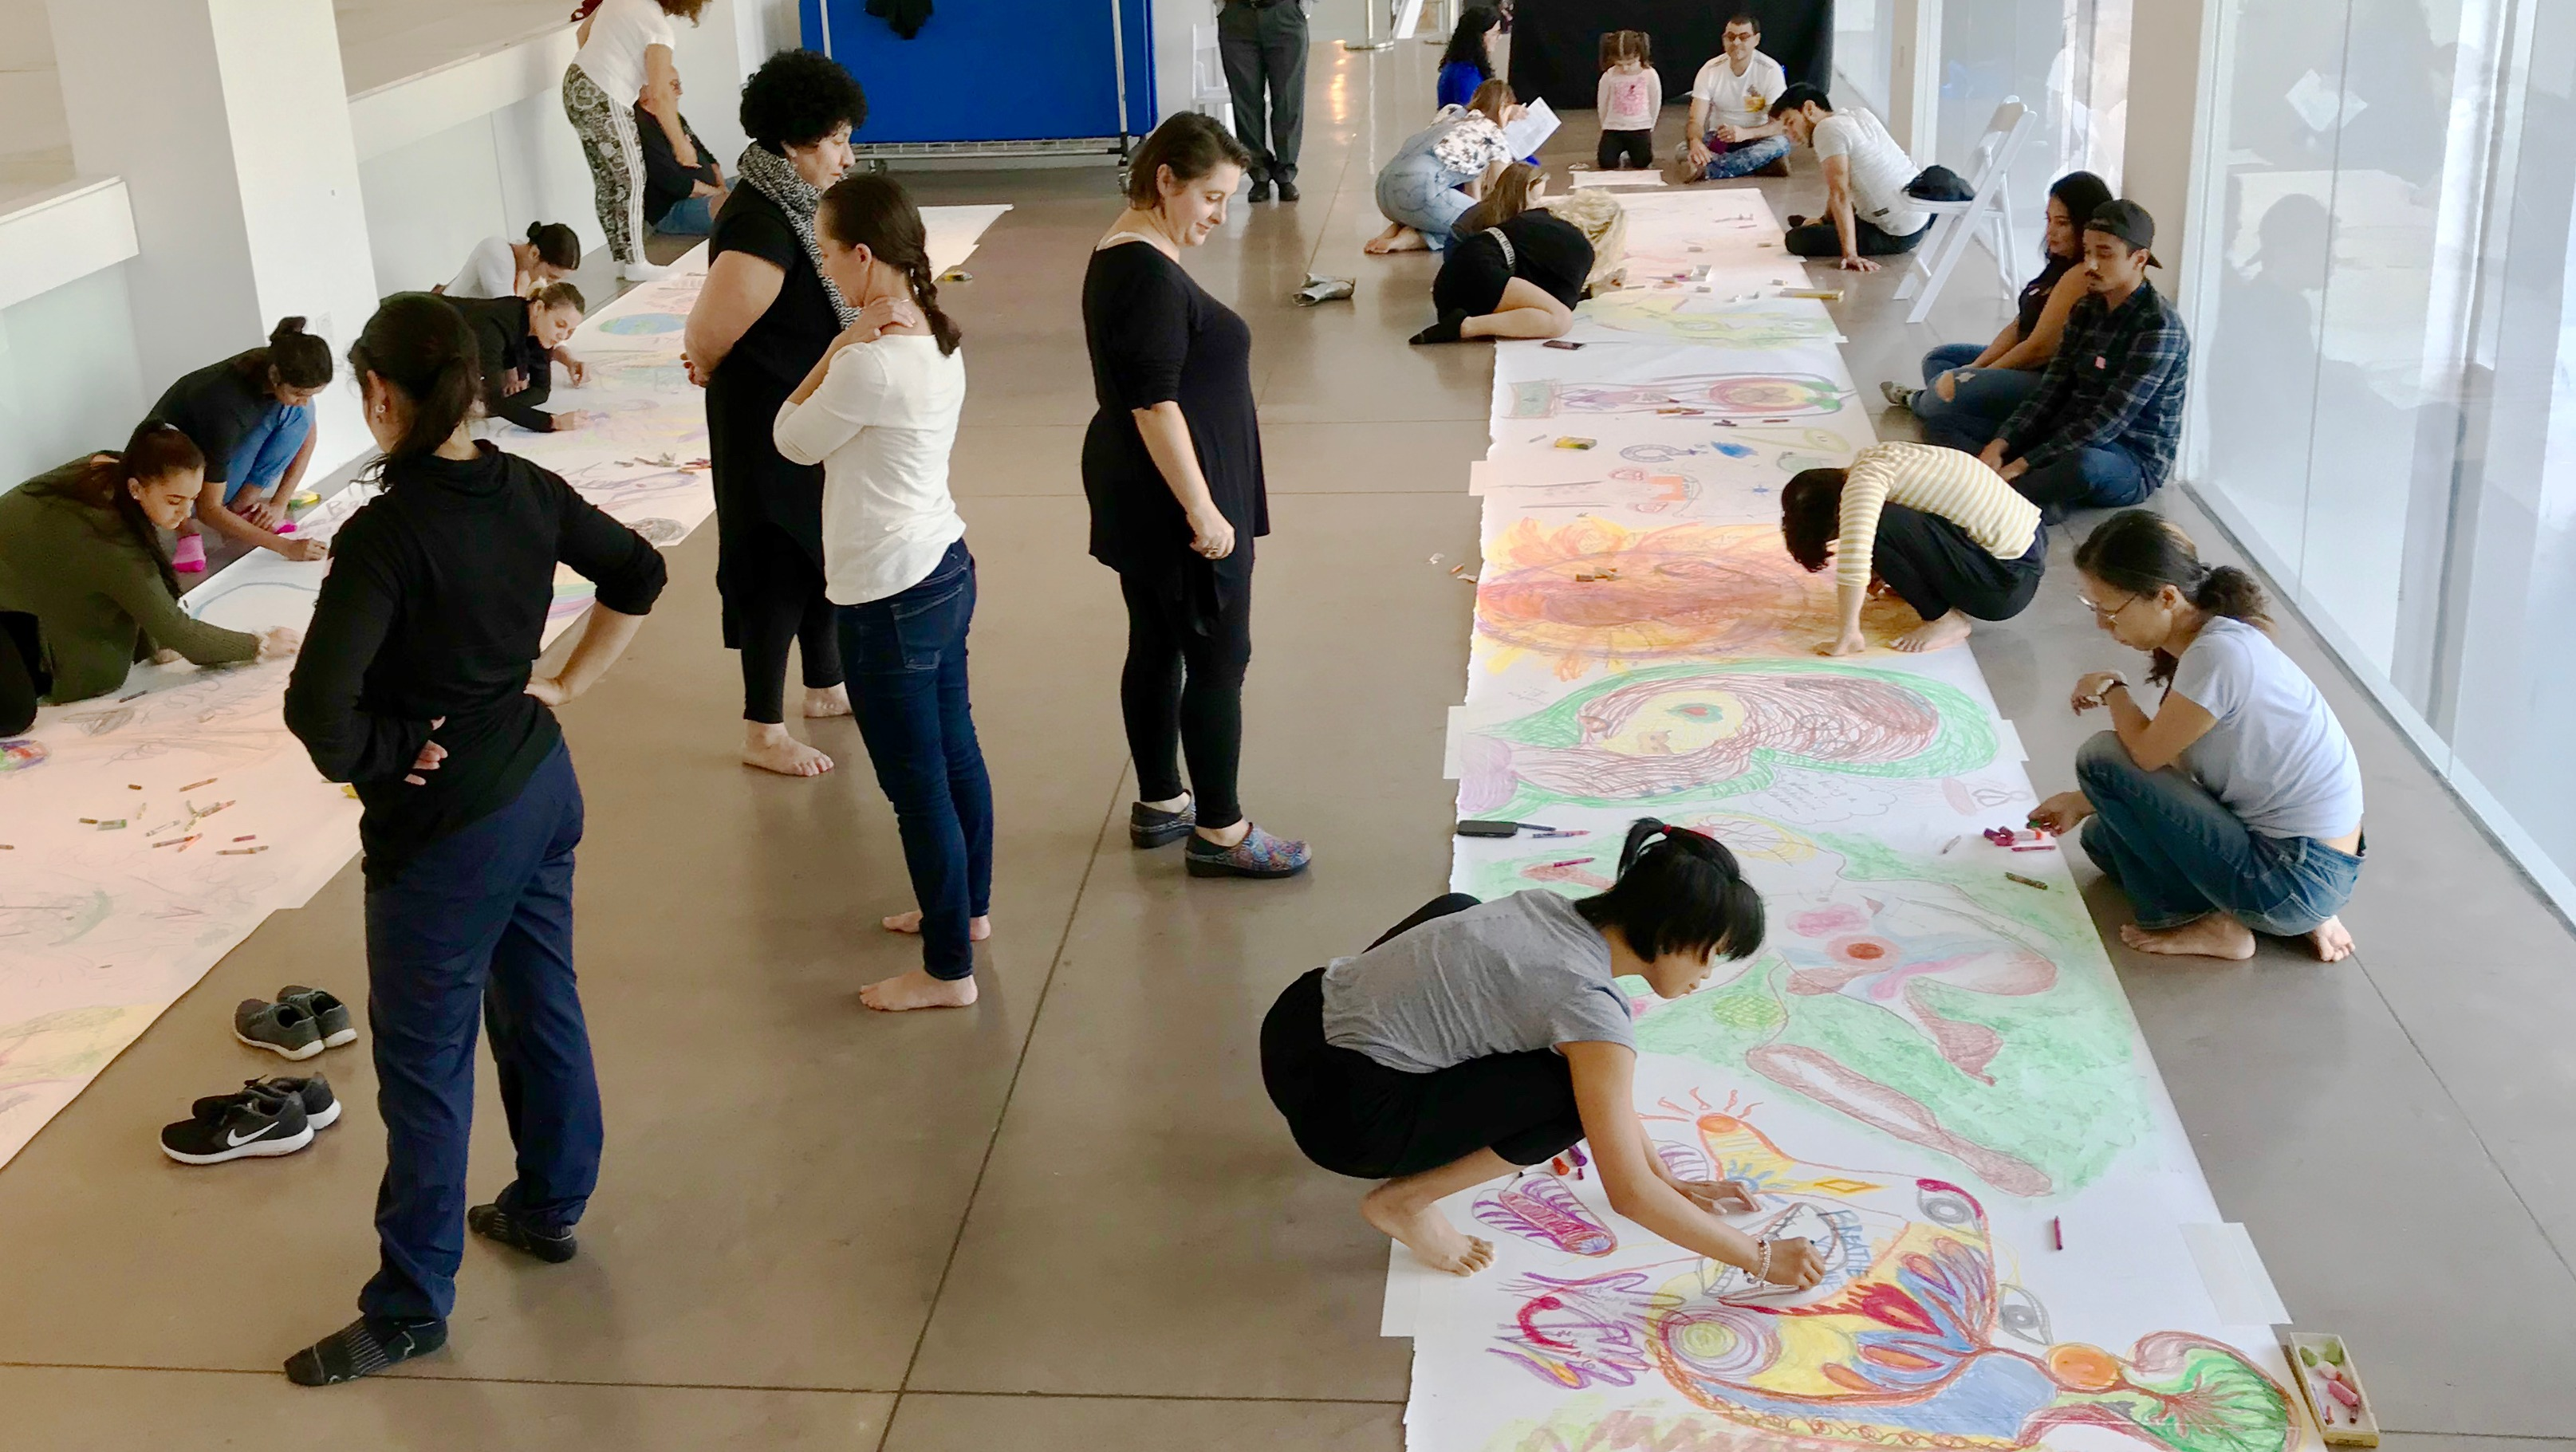 a room full of students drawing on a roll of paper on the floor.